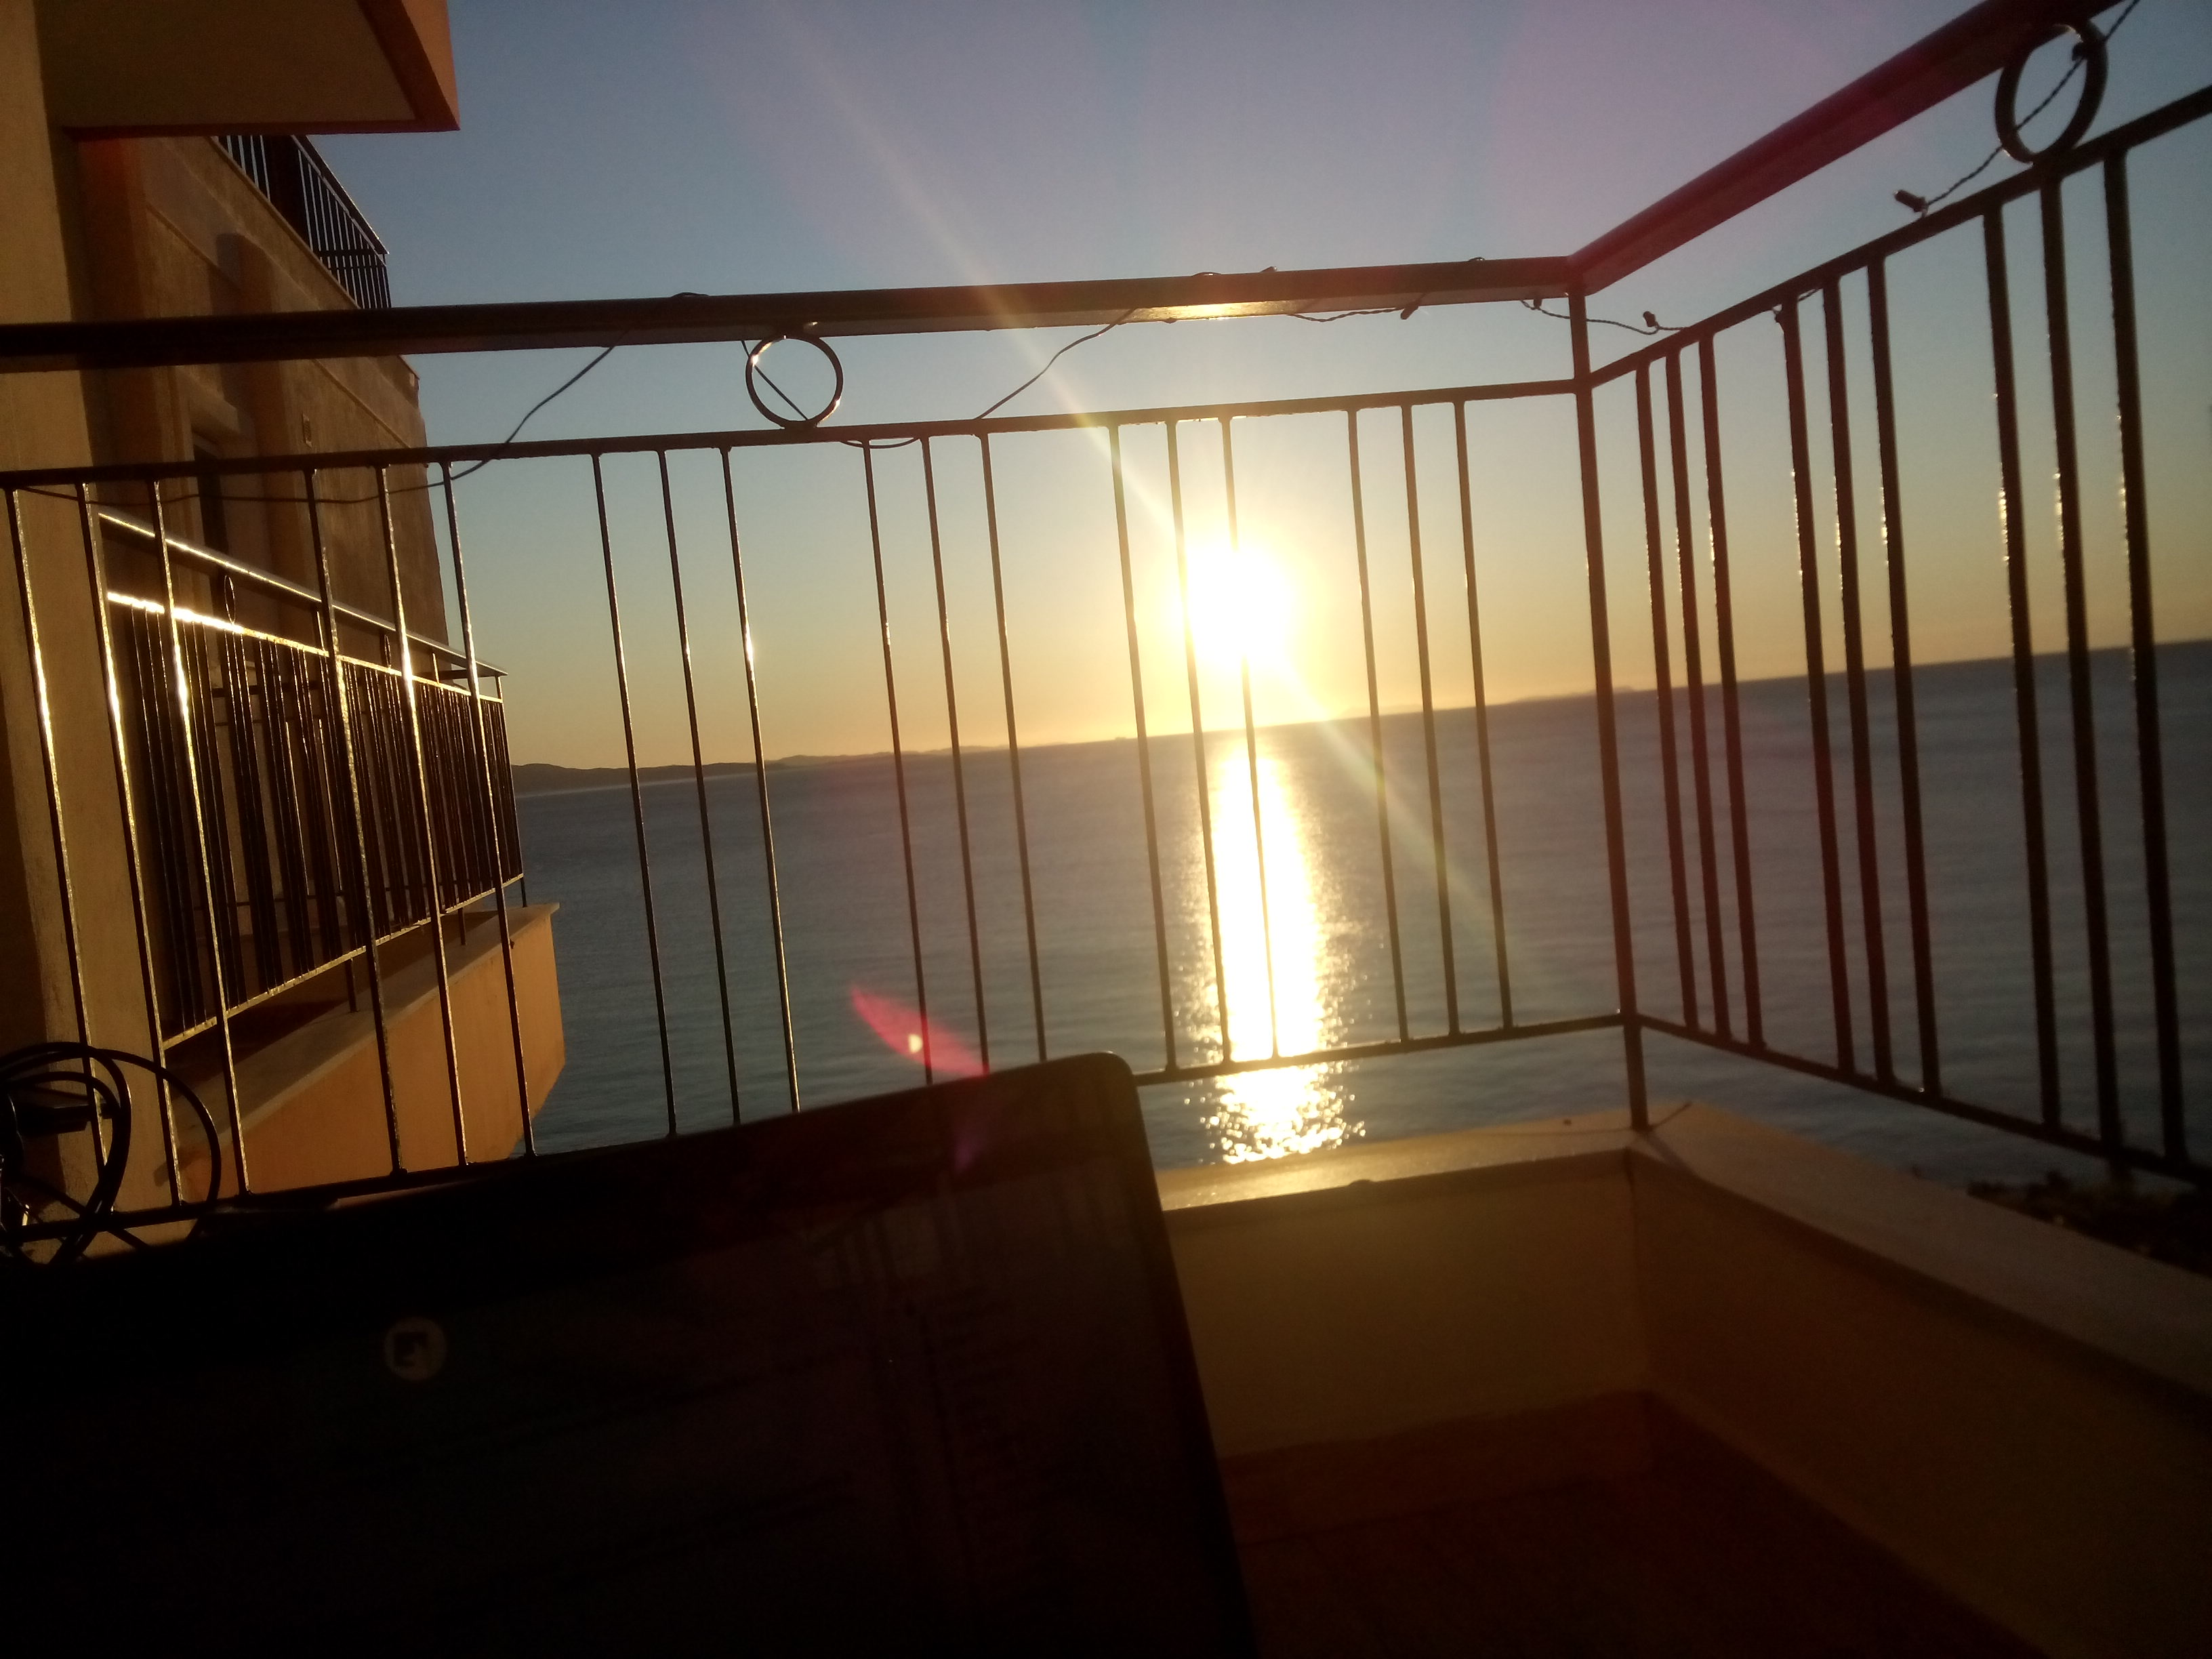 A sunset over the sea from a balcony